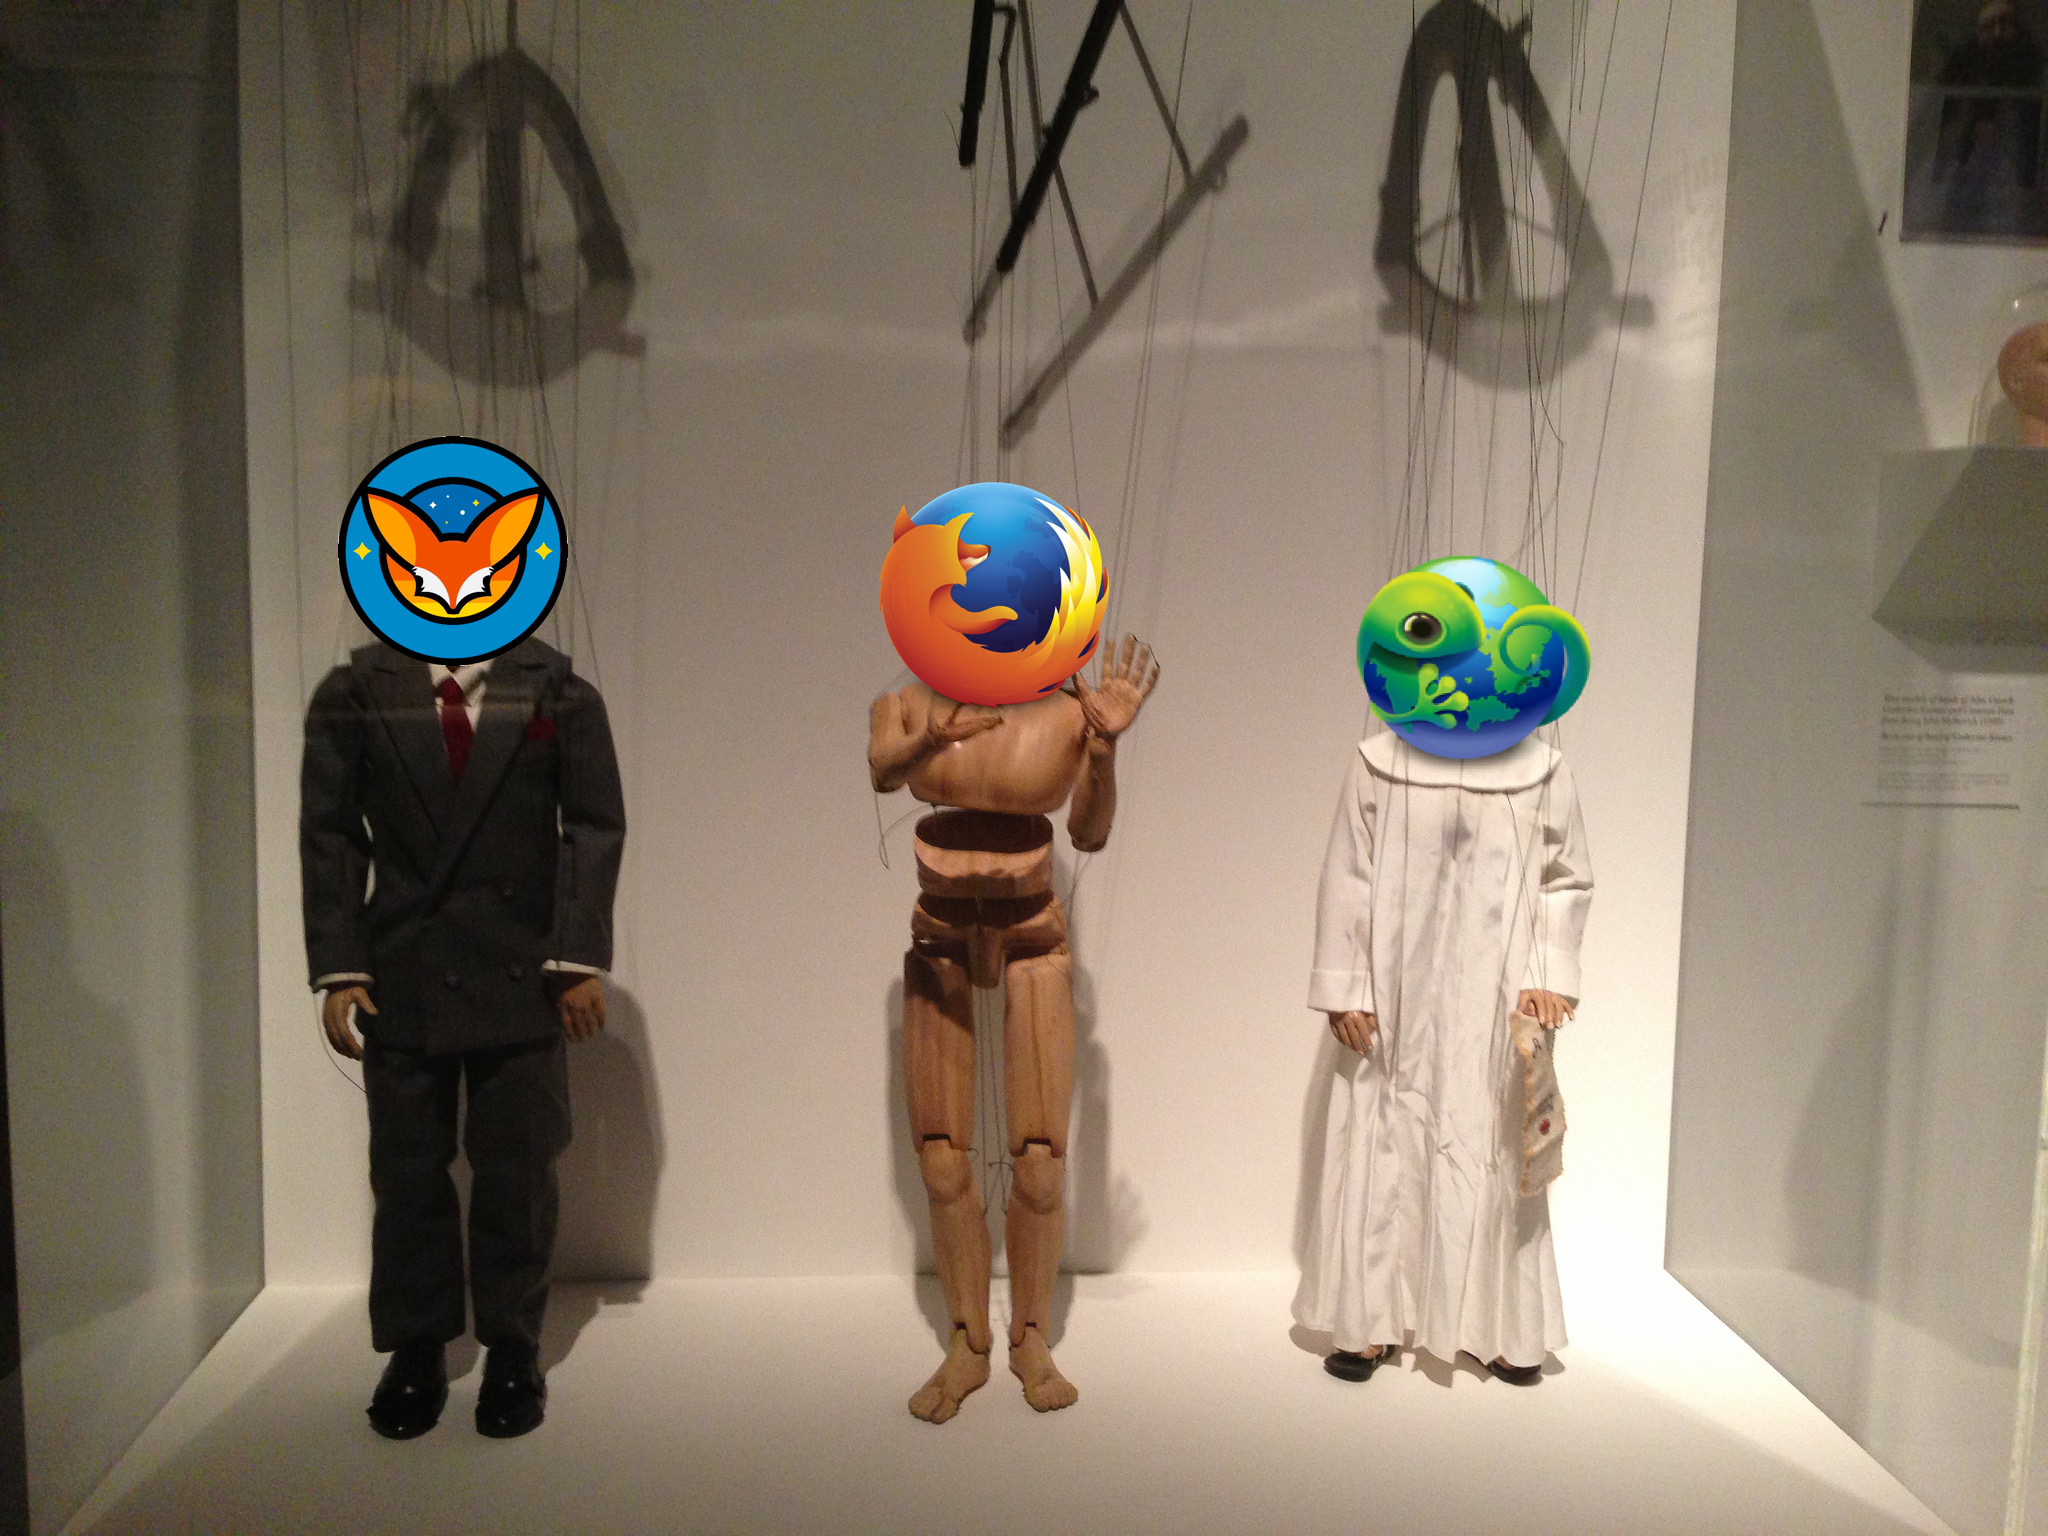 Picture of three marionette puppets with Fennec, Firefox, and B2G logos instead of heads